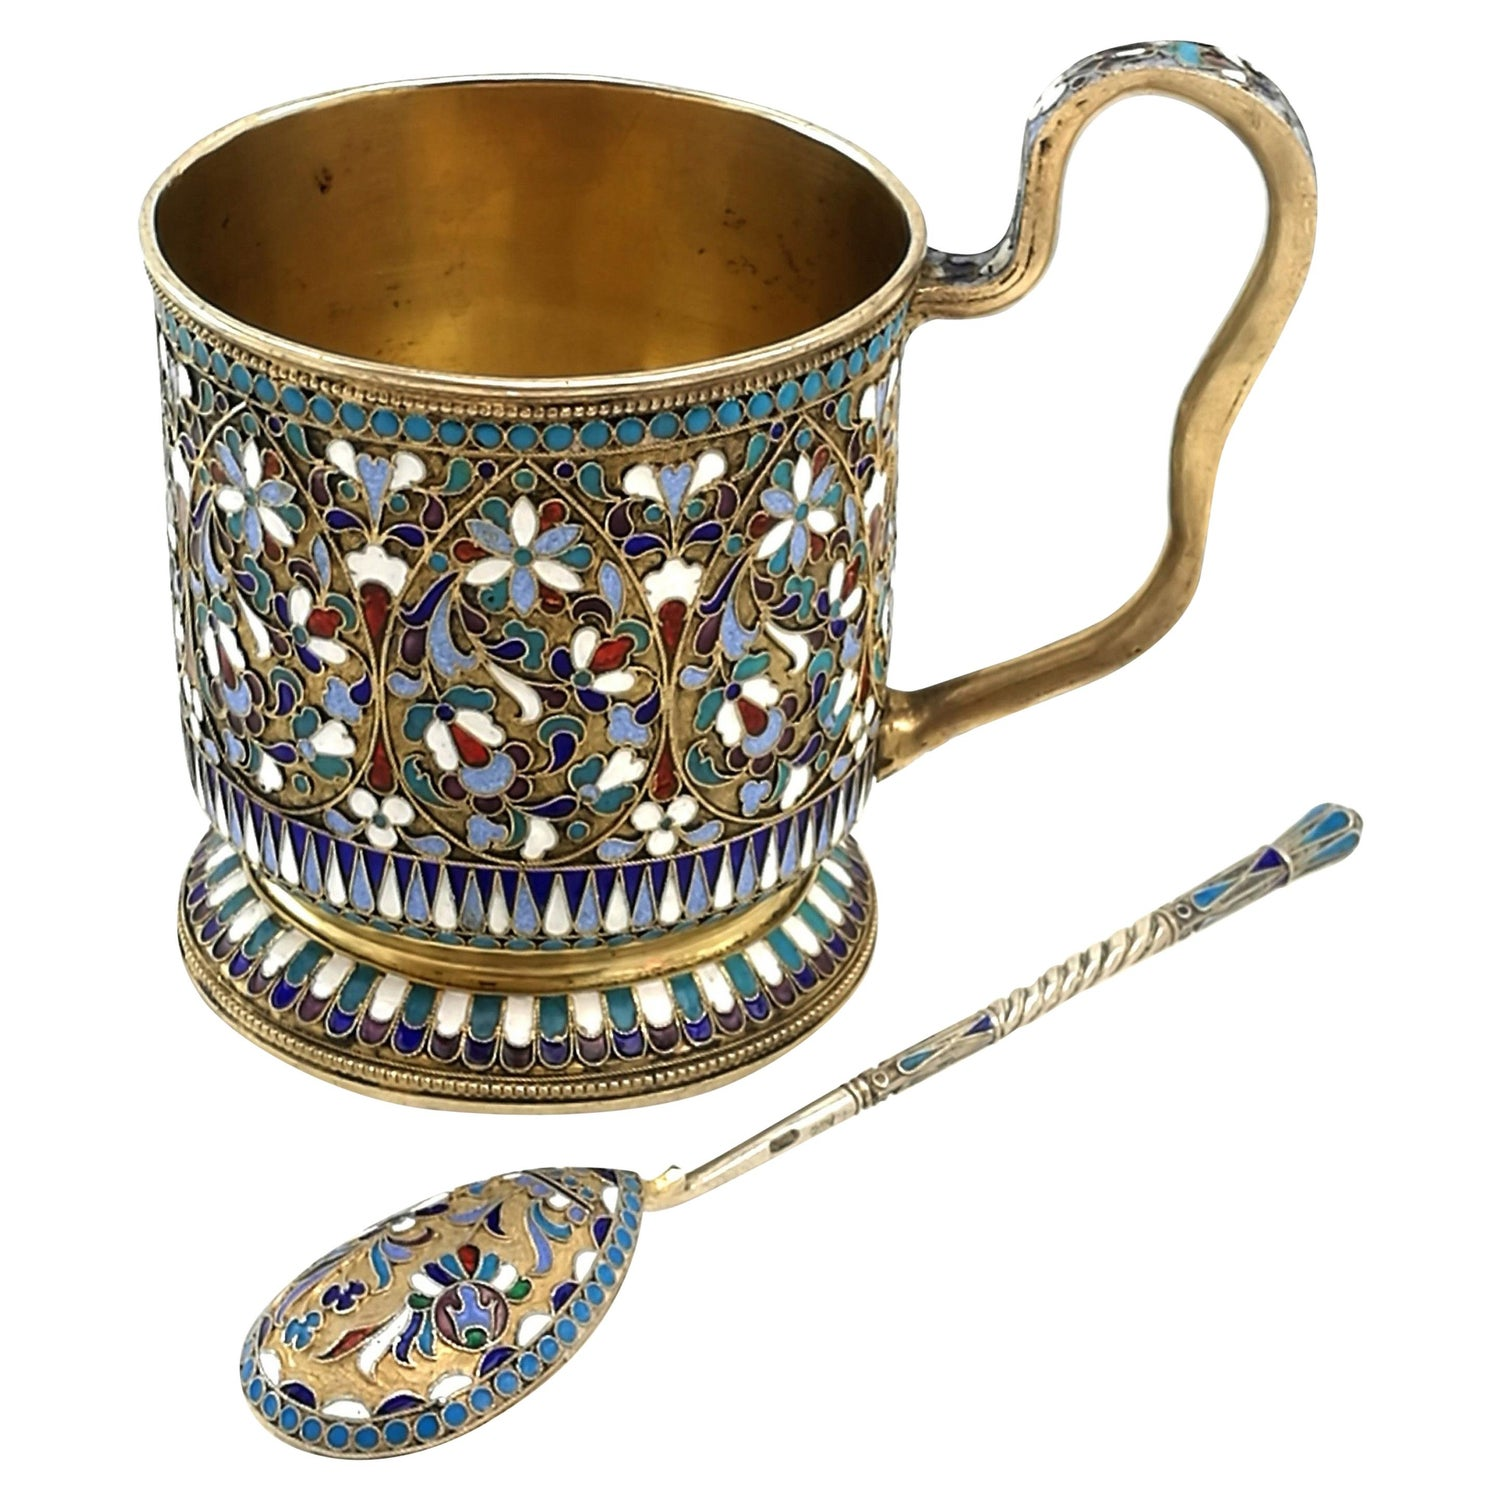 Antique Russian Silver Gilt & Enamel Cup and Spoon circa 1899 Tea Cup Teaspoon